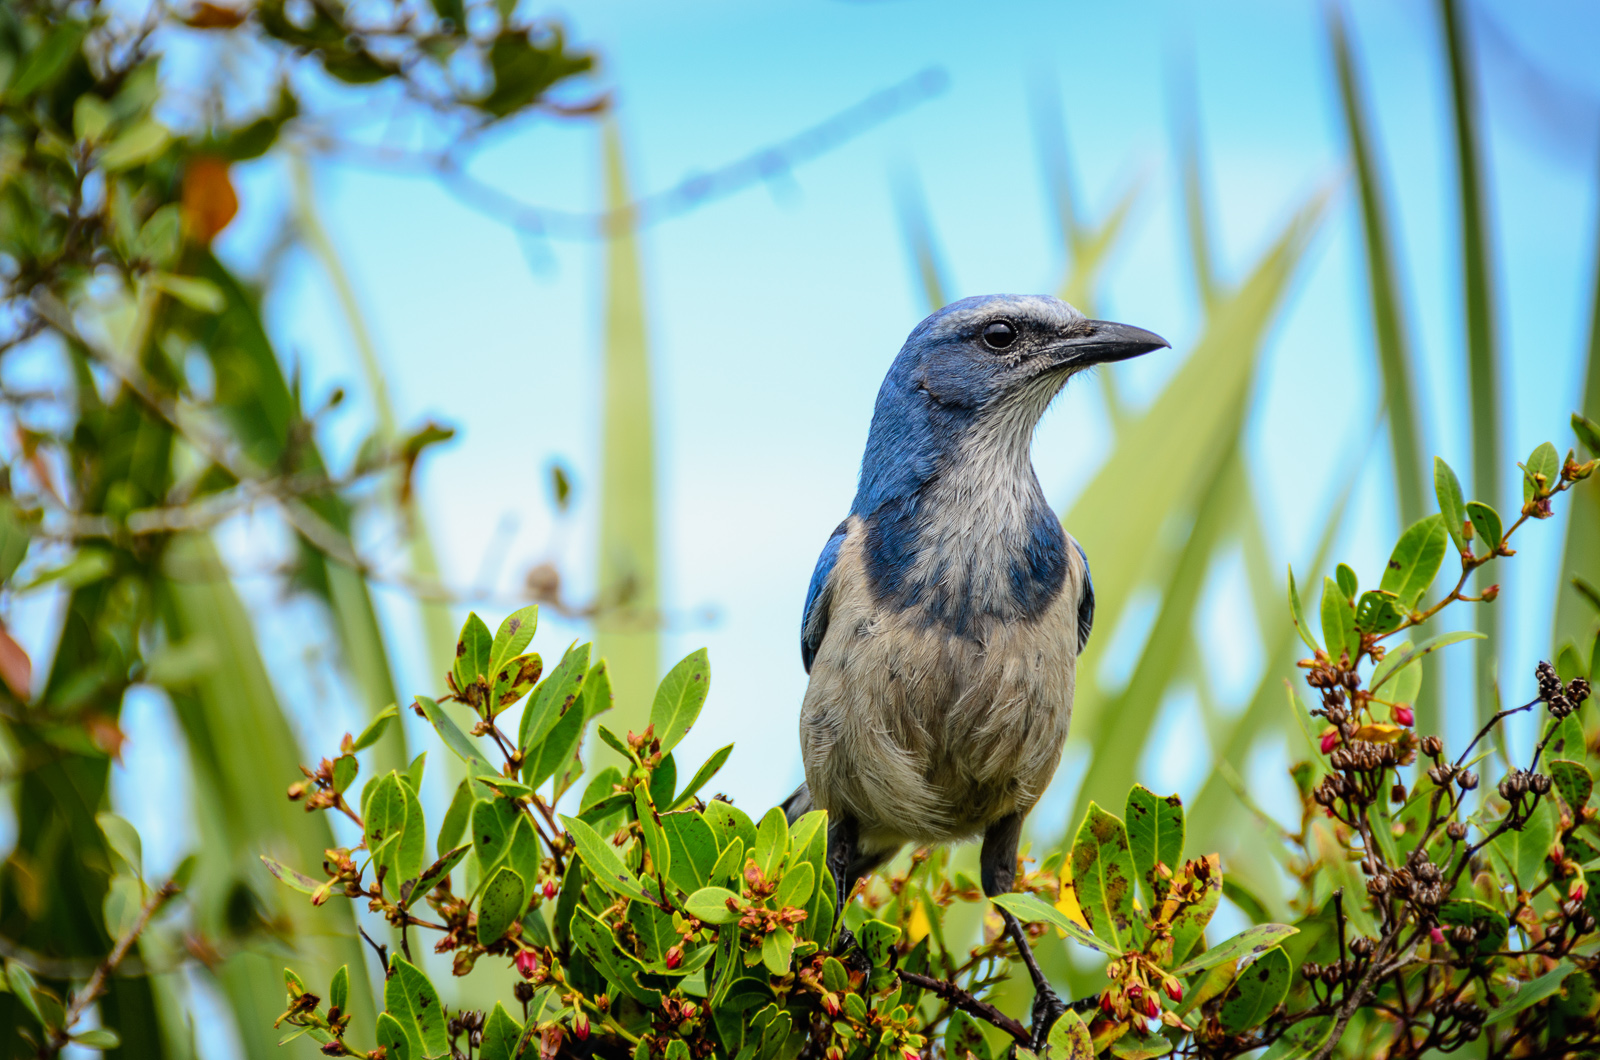 Conservation Florida's vision is a Florida where protected lands support healthy populations of native plants and wildlife, like the Florida Scrub Jay pictured above. Photo by Chuck Palmer